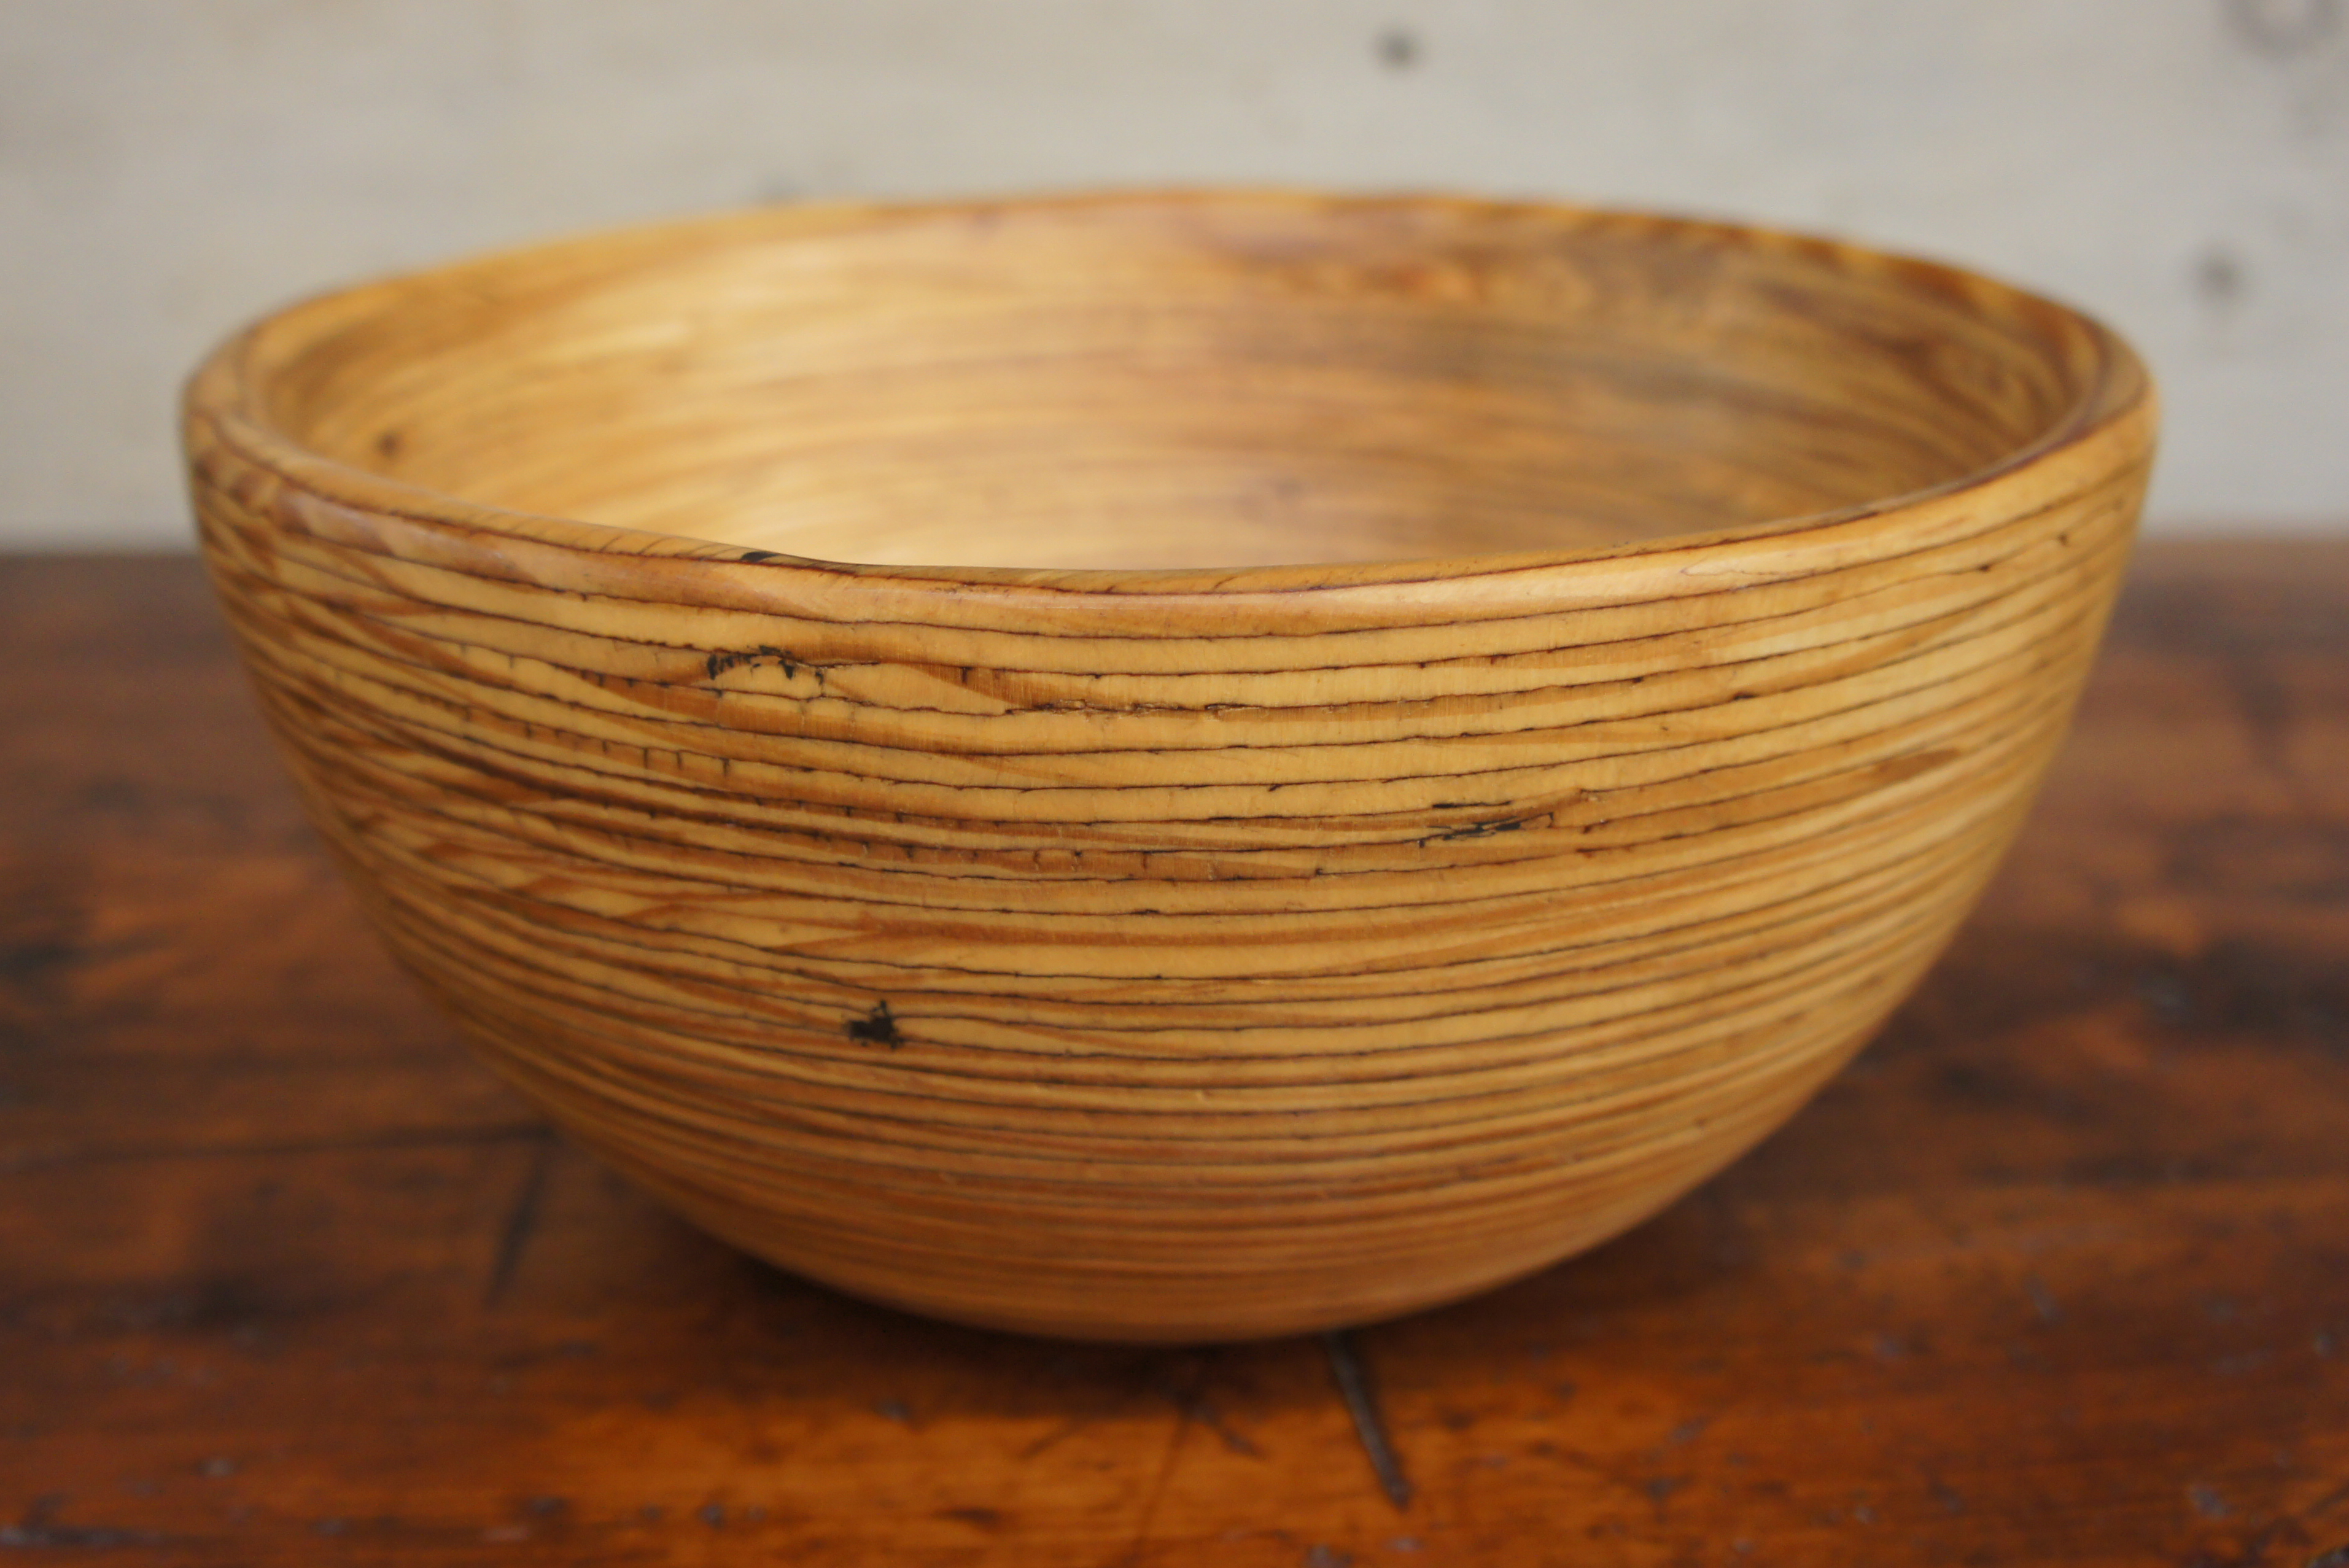 SSB-0340 Engineer Structural Beam Bowl ~ $95